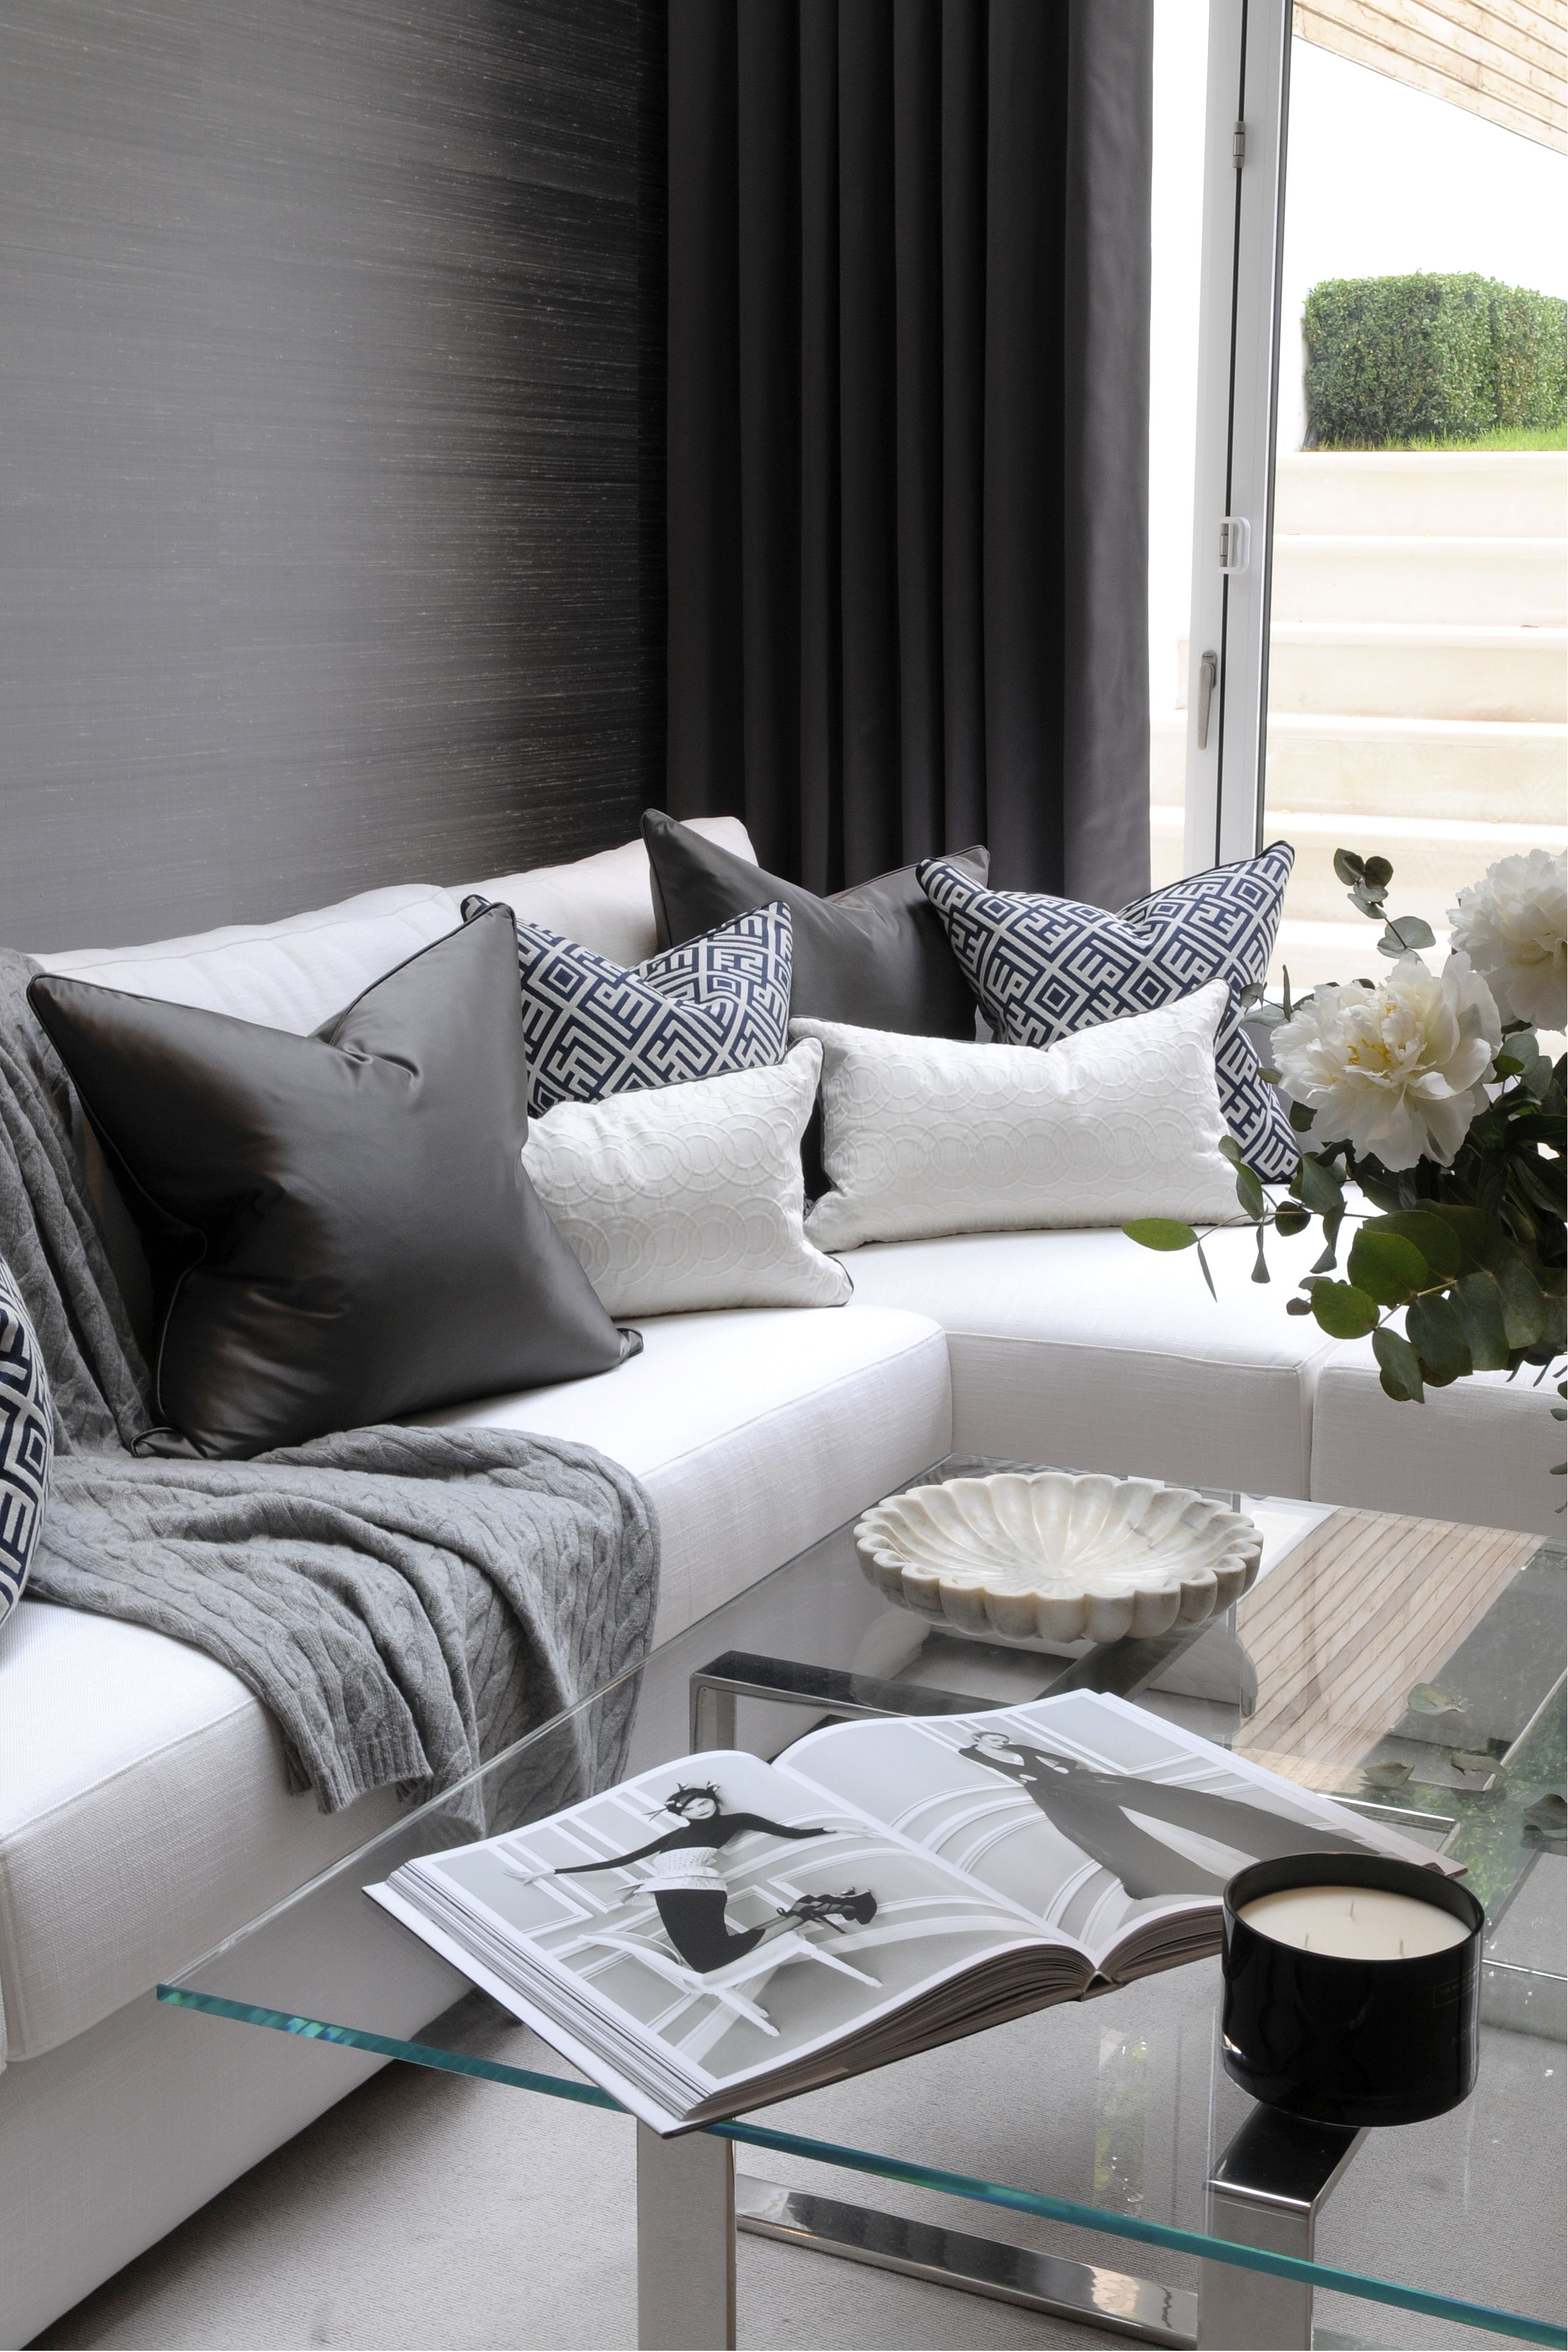 Design A Couch Th2 Designs This Corner Sofa Is Adorned Beautifully With